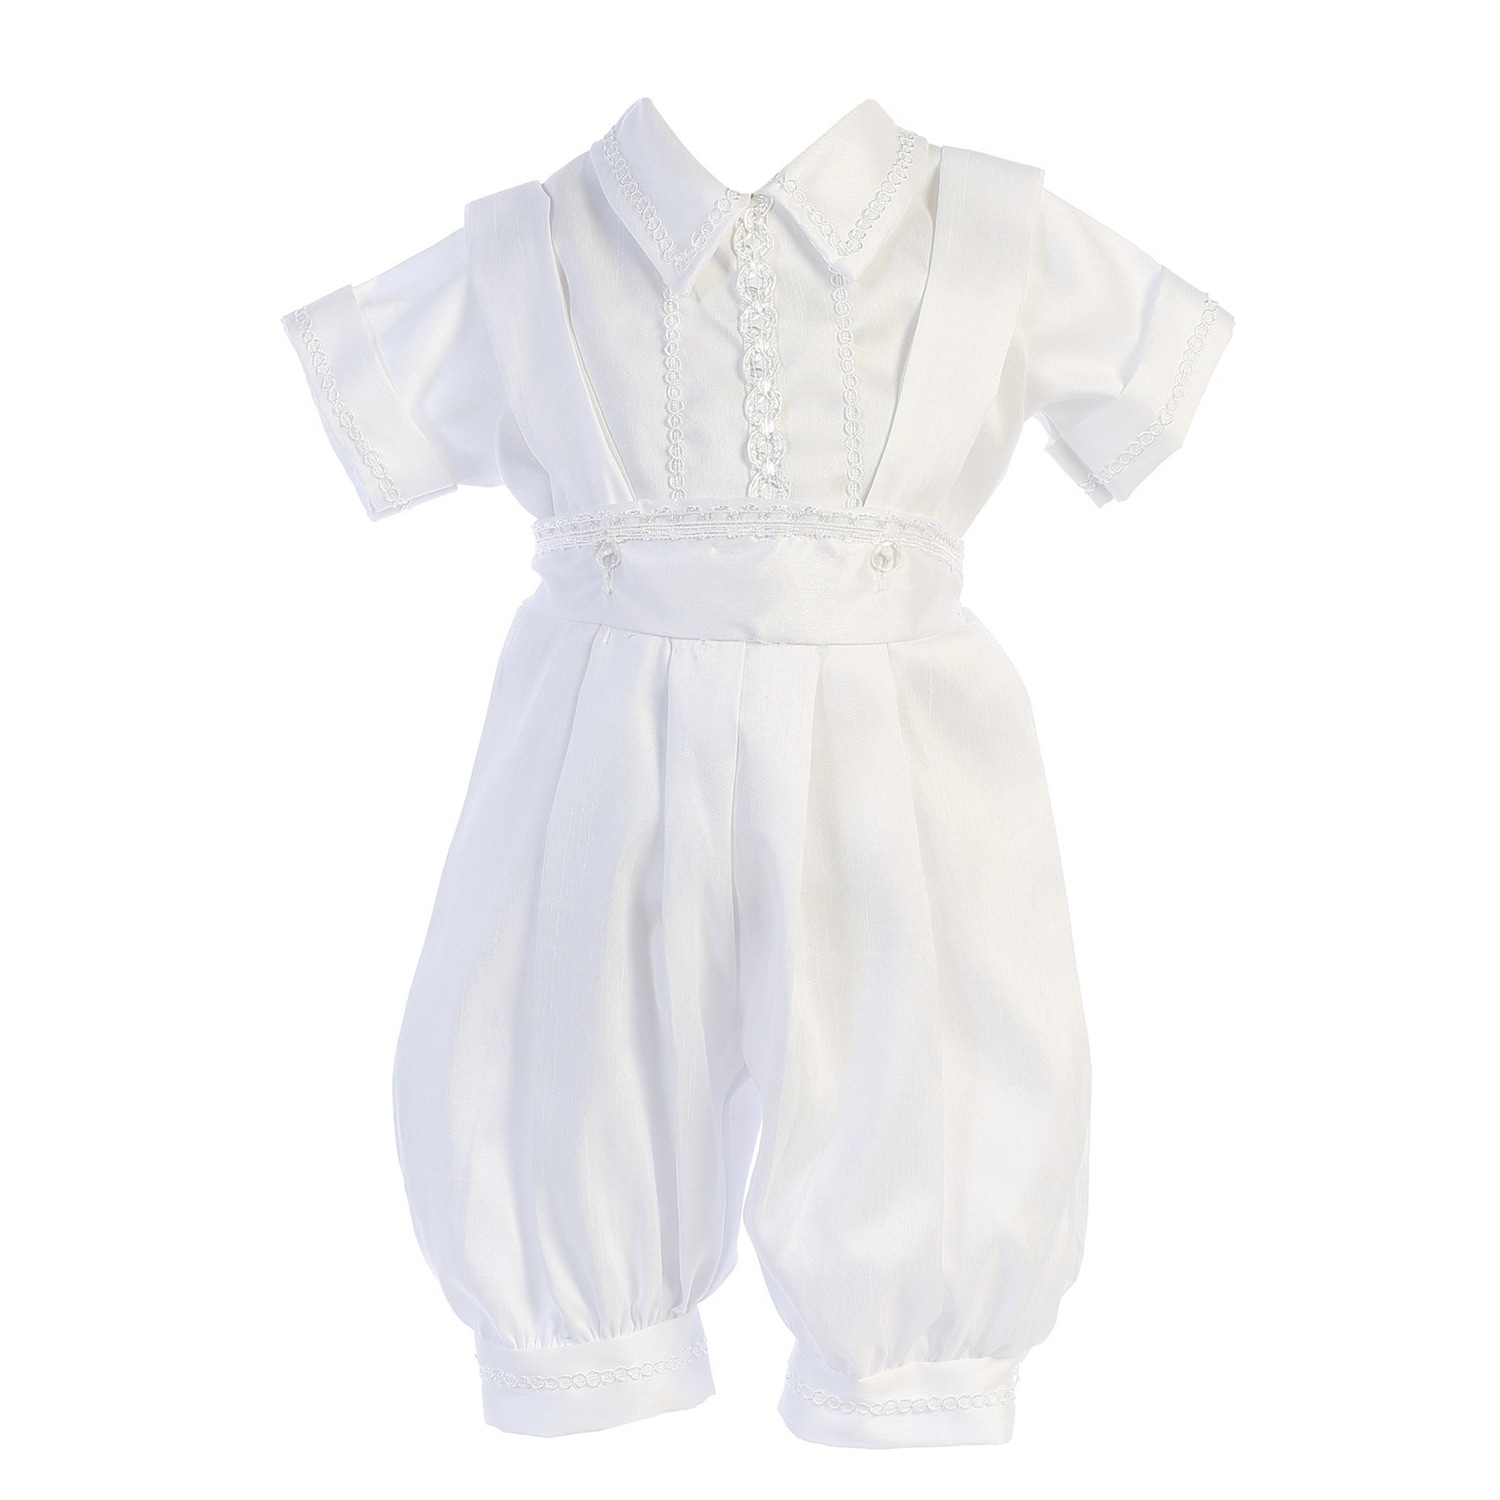 63785c817 Shop Angels Garment Baby Boys White Shantung Stole Cap Romper Baptism  Outfit - Free Shipping Today - Overstock - 26458367